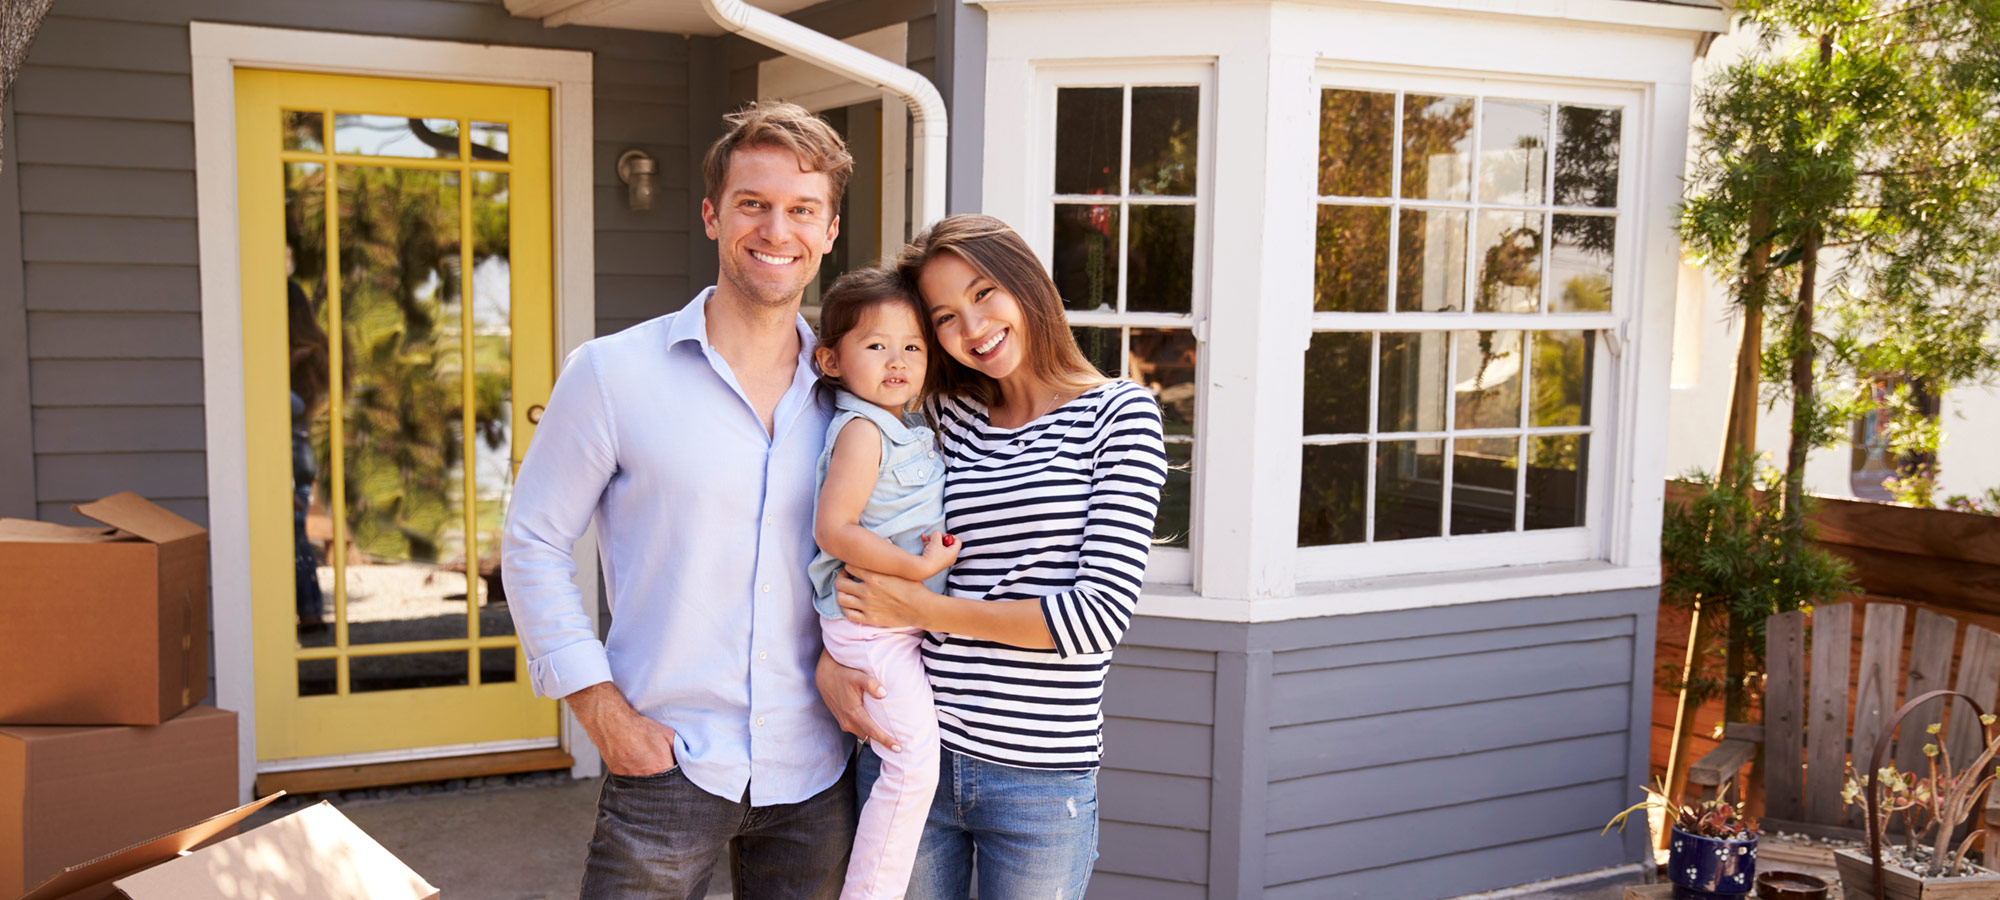 New Homeowners with child, unpacking in front of house